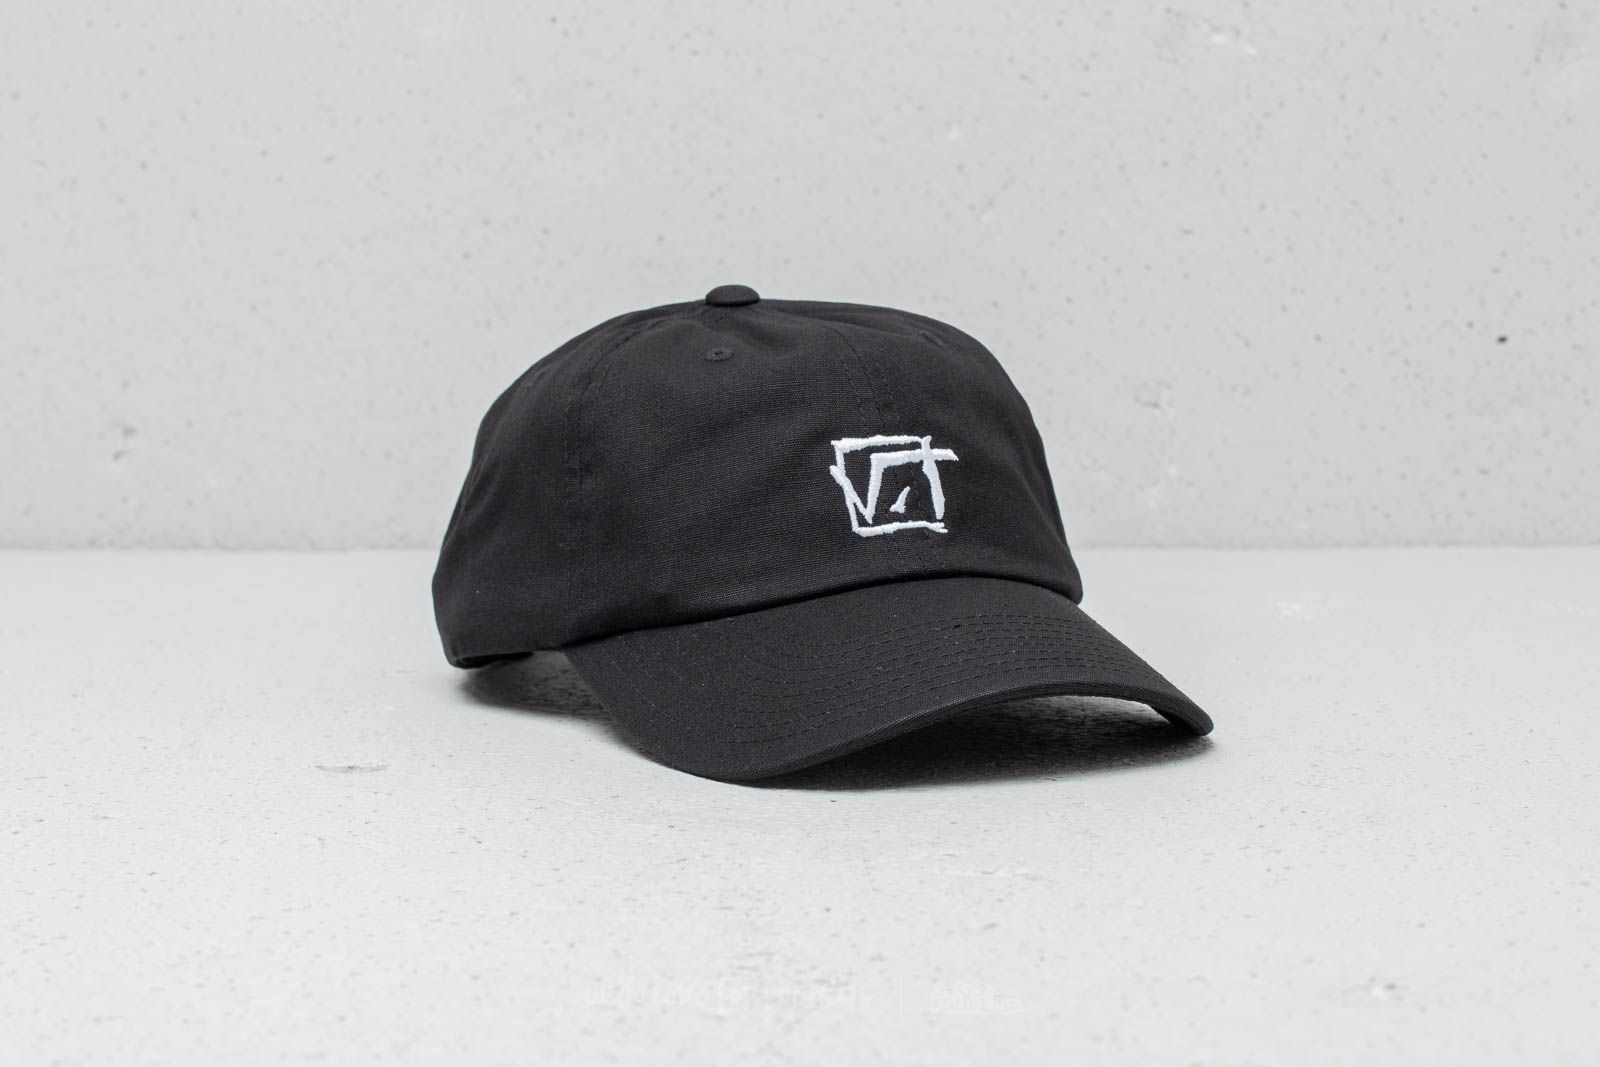 f97bafbdeea Vans Anaheim Factory Bill Jockey Hat Black